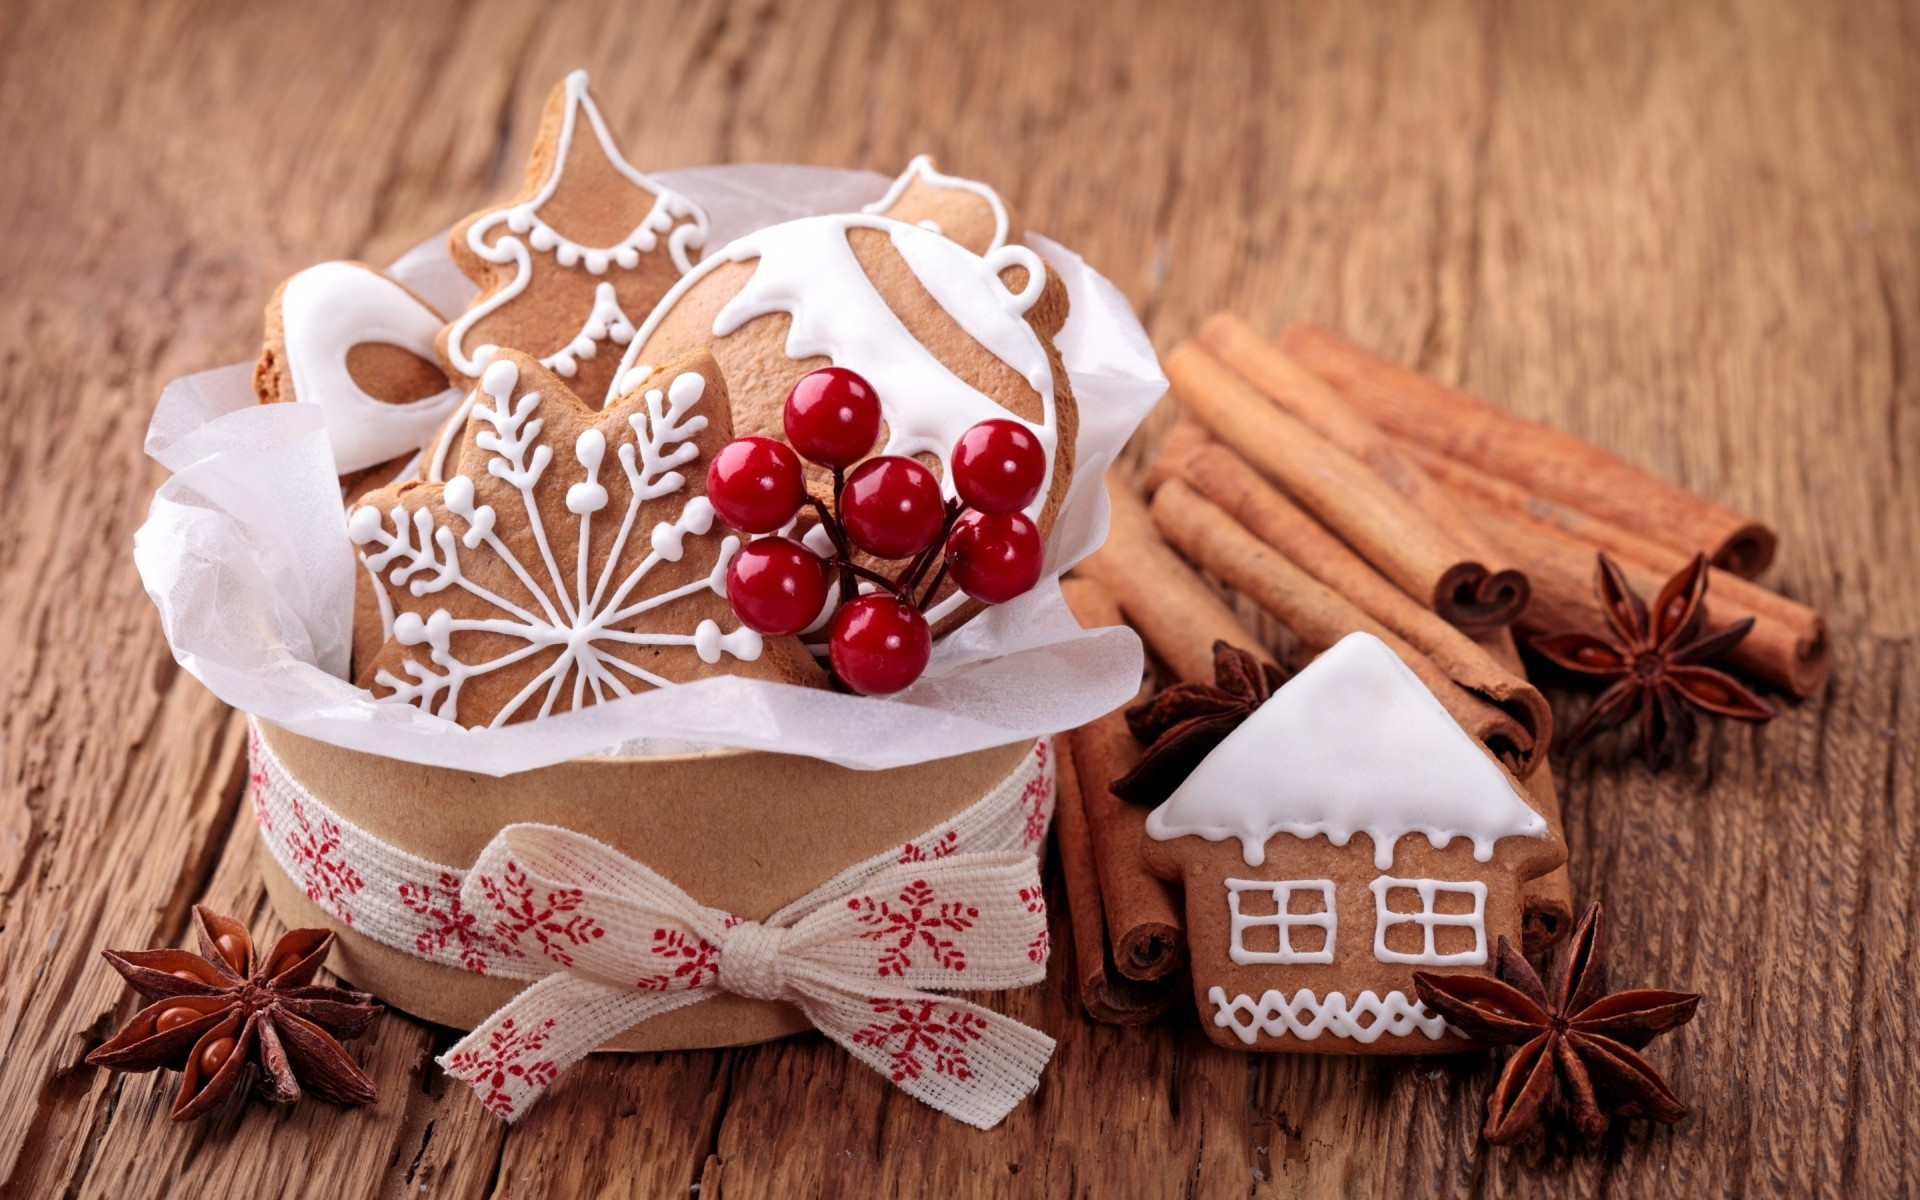 christmas cinnamon wooden wood anise food spice rustic traditional cookie gingerbread sweet star anise homemade aromatic table baking desktop advent sweets dessert christmas ornaments